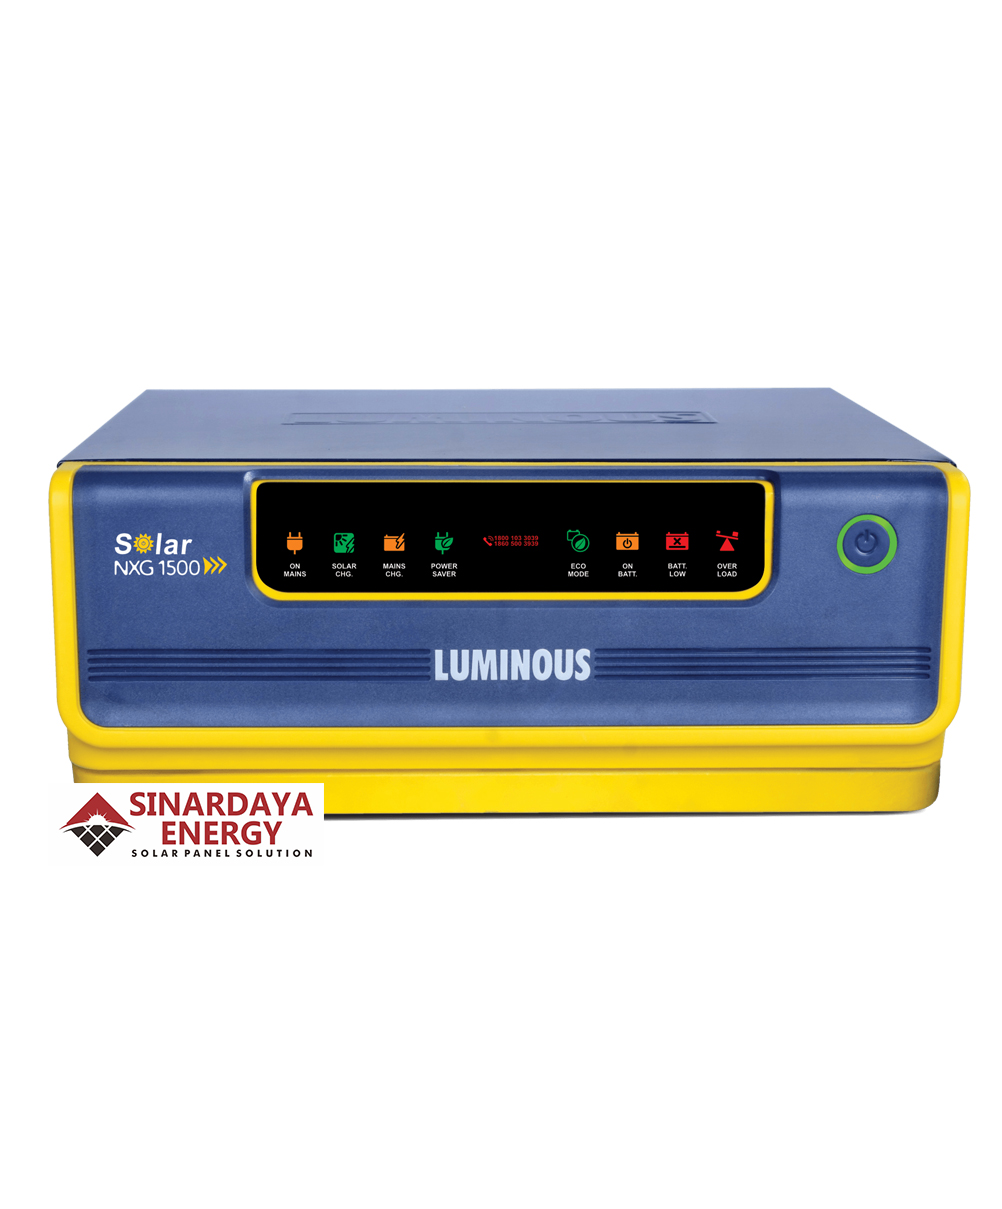 harga Luminous Solar Inverter 1500Va